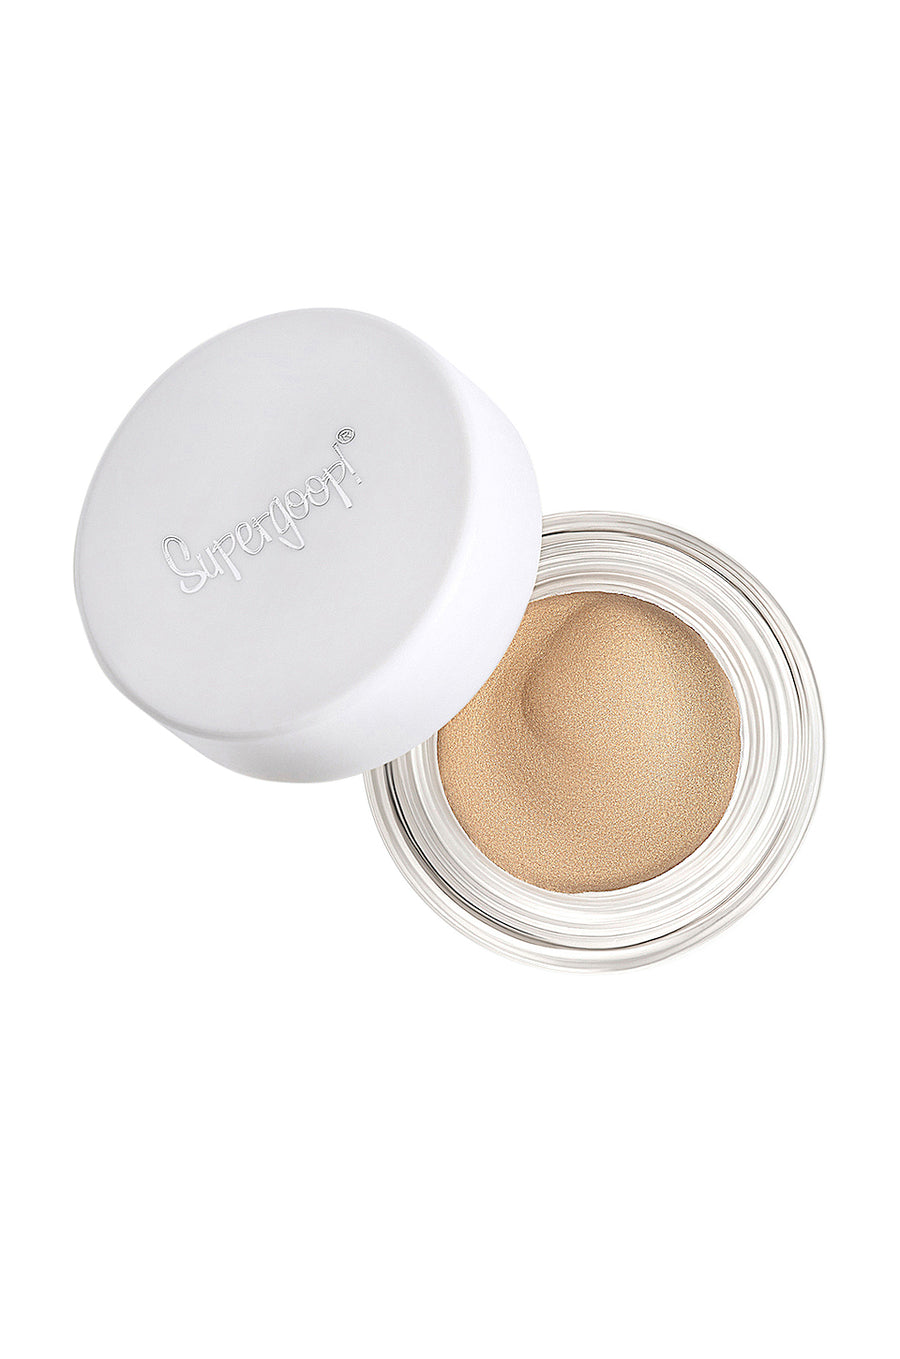 Shimmer Shade SPF 30 Sunset, 0.18 oz